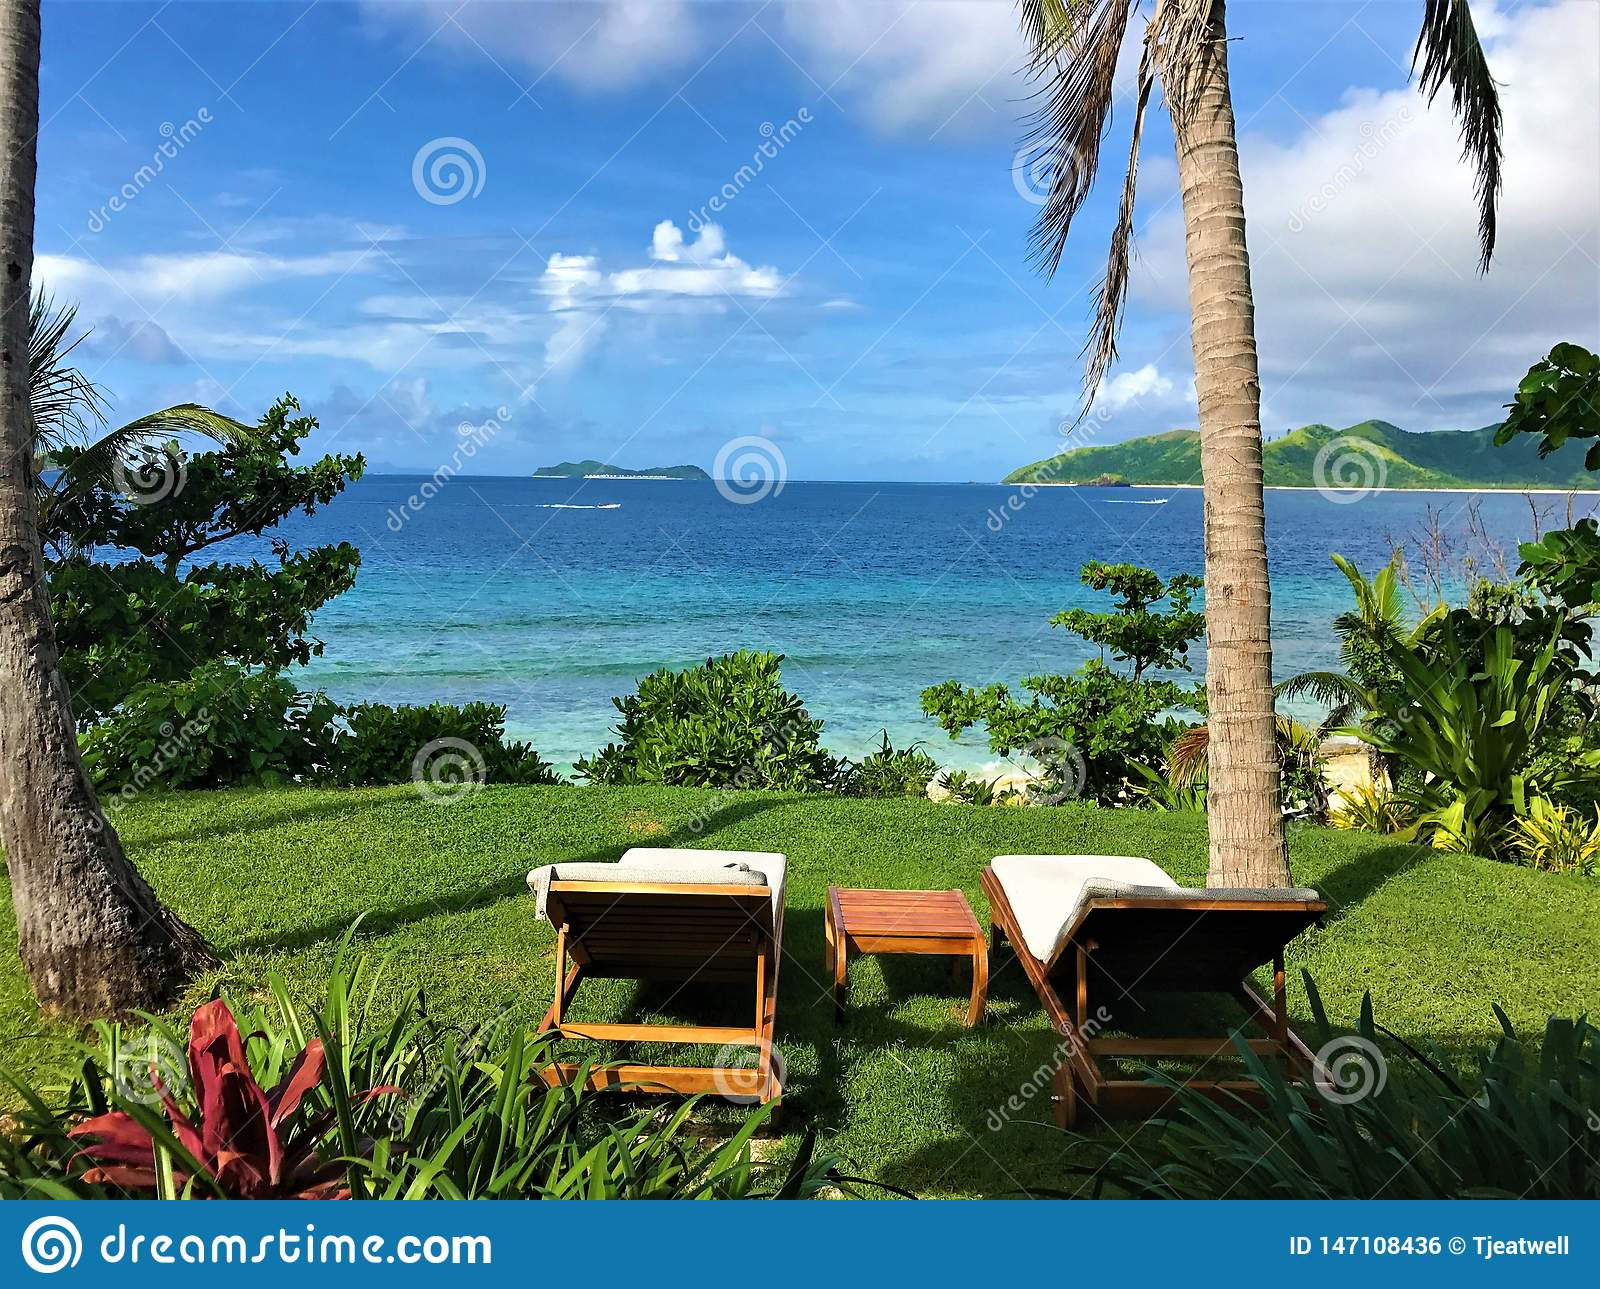 Tropical scene looking out and relaxing